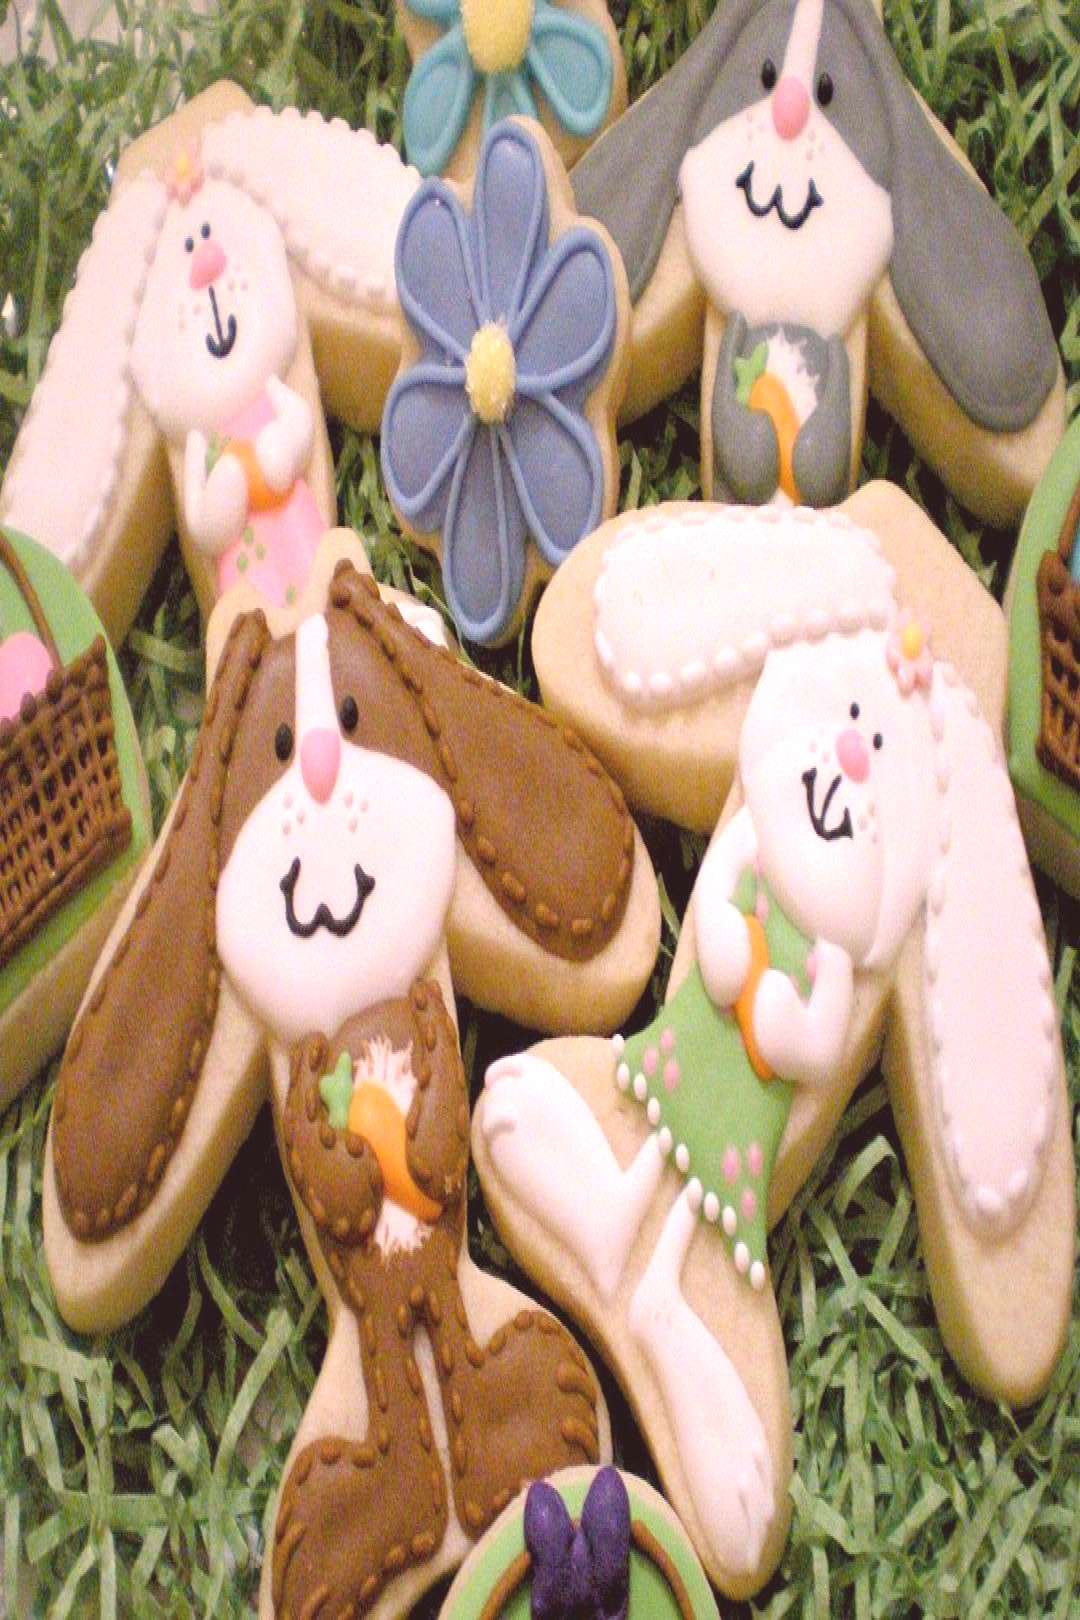 used a airplane cutter to make these floppy-earred bunnies, and I